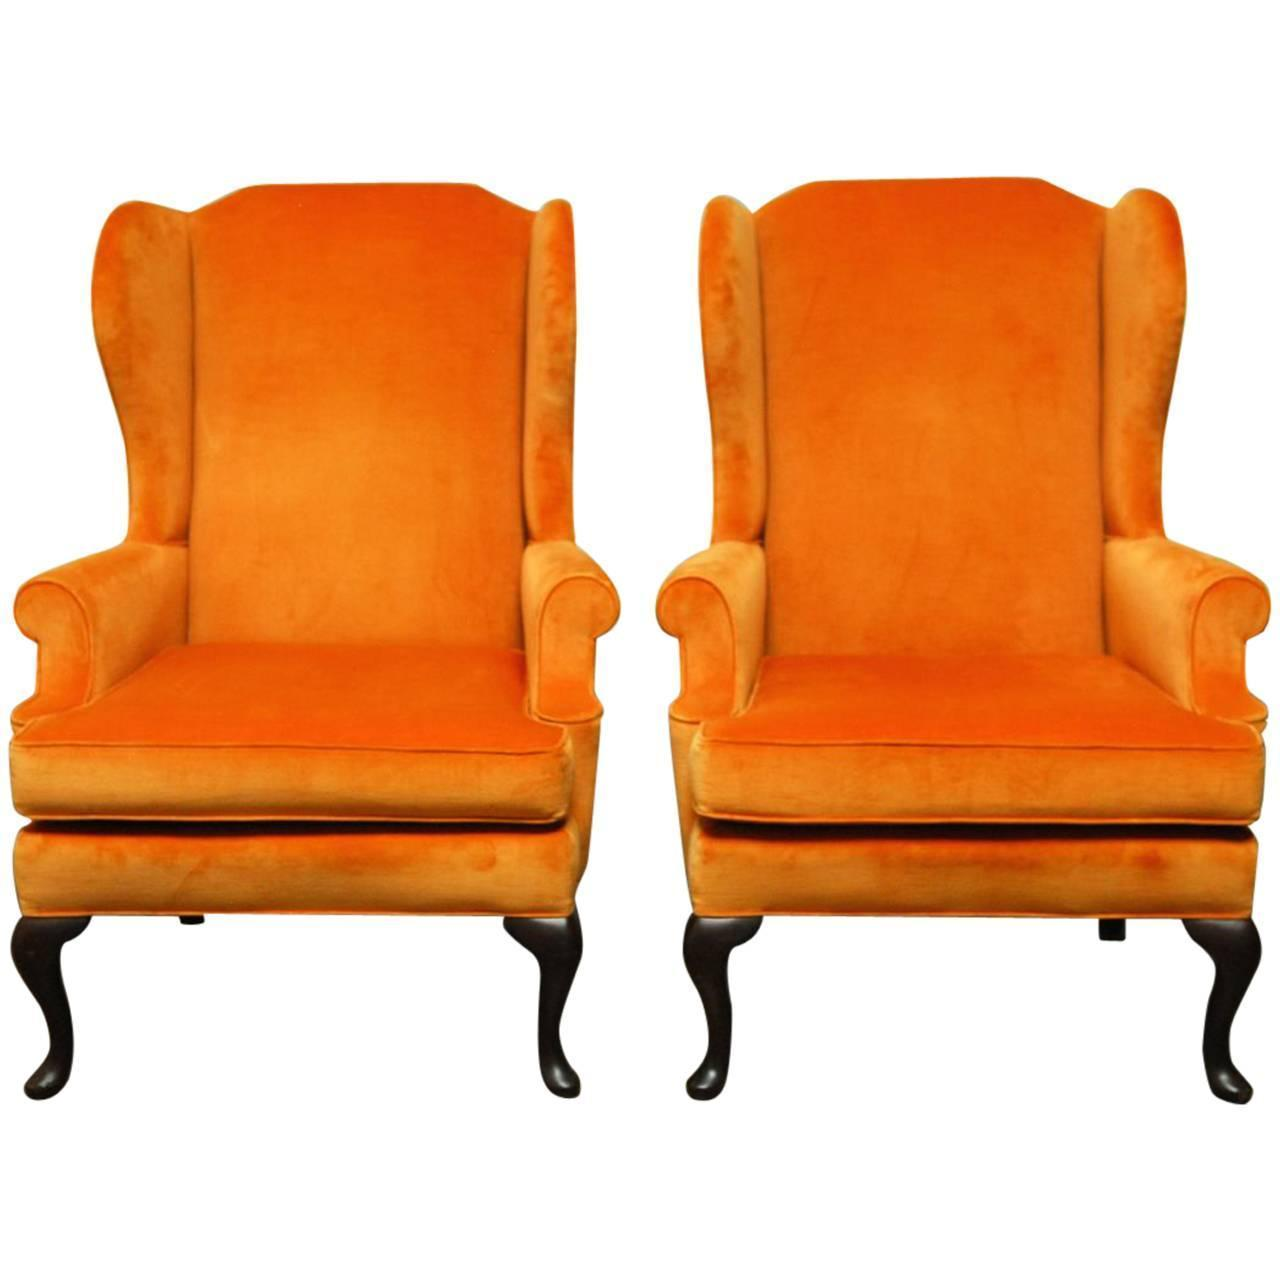 Queen Anne Wingback Chair Queen Anne Style Orange Wingback Chairs A Pair Chairish